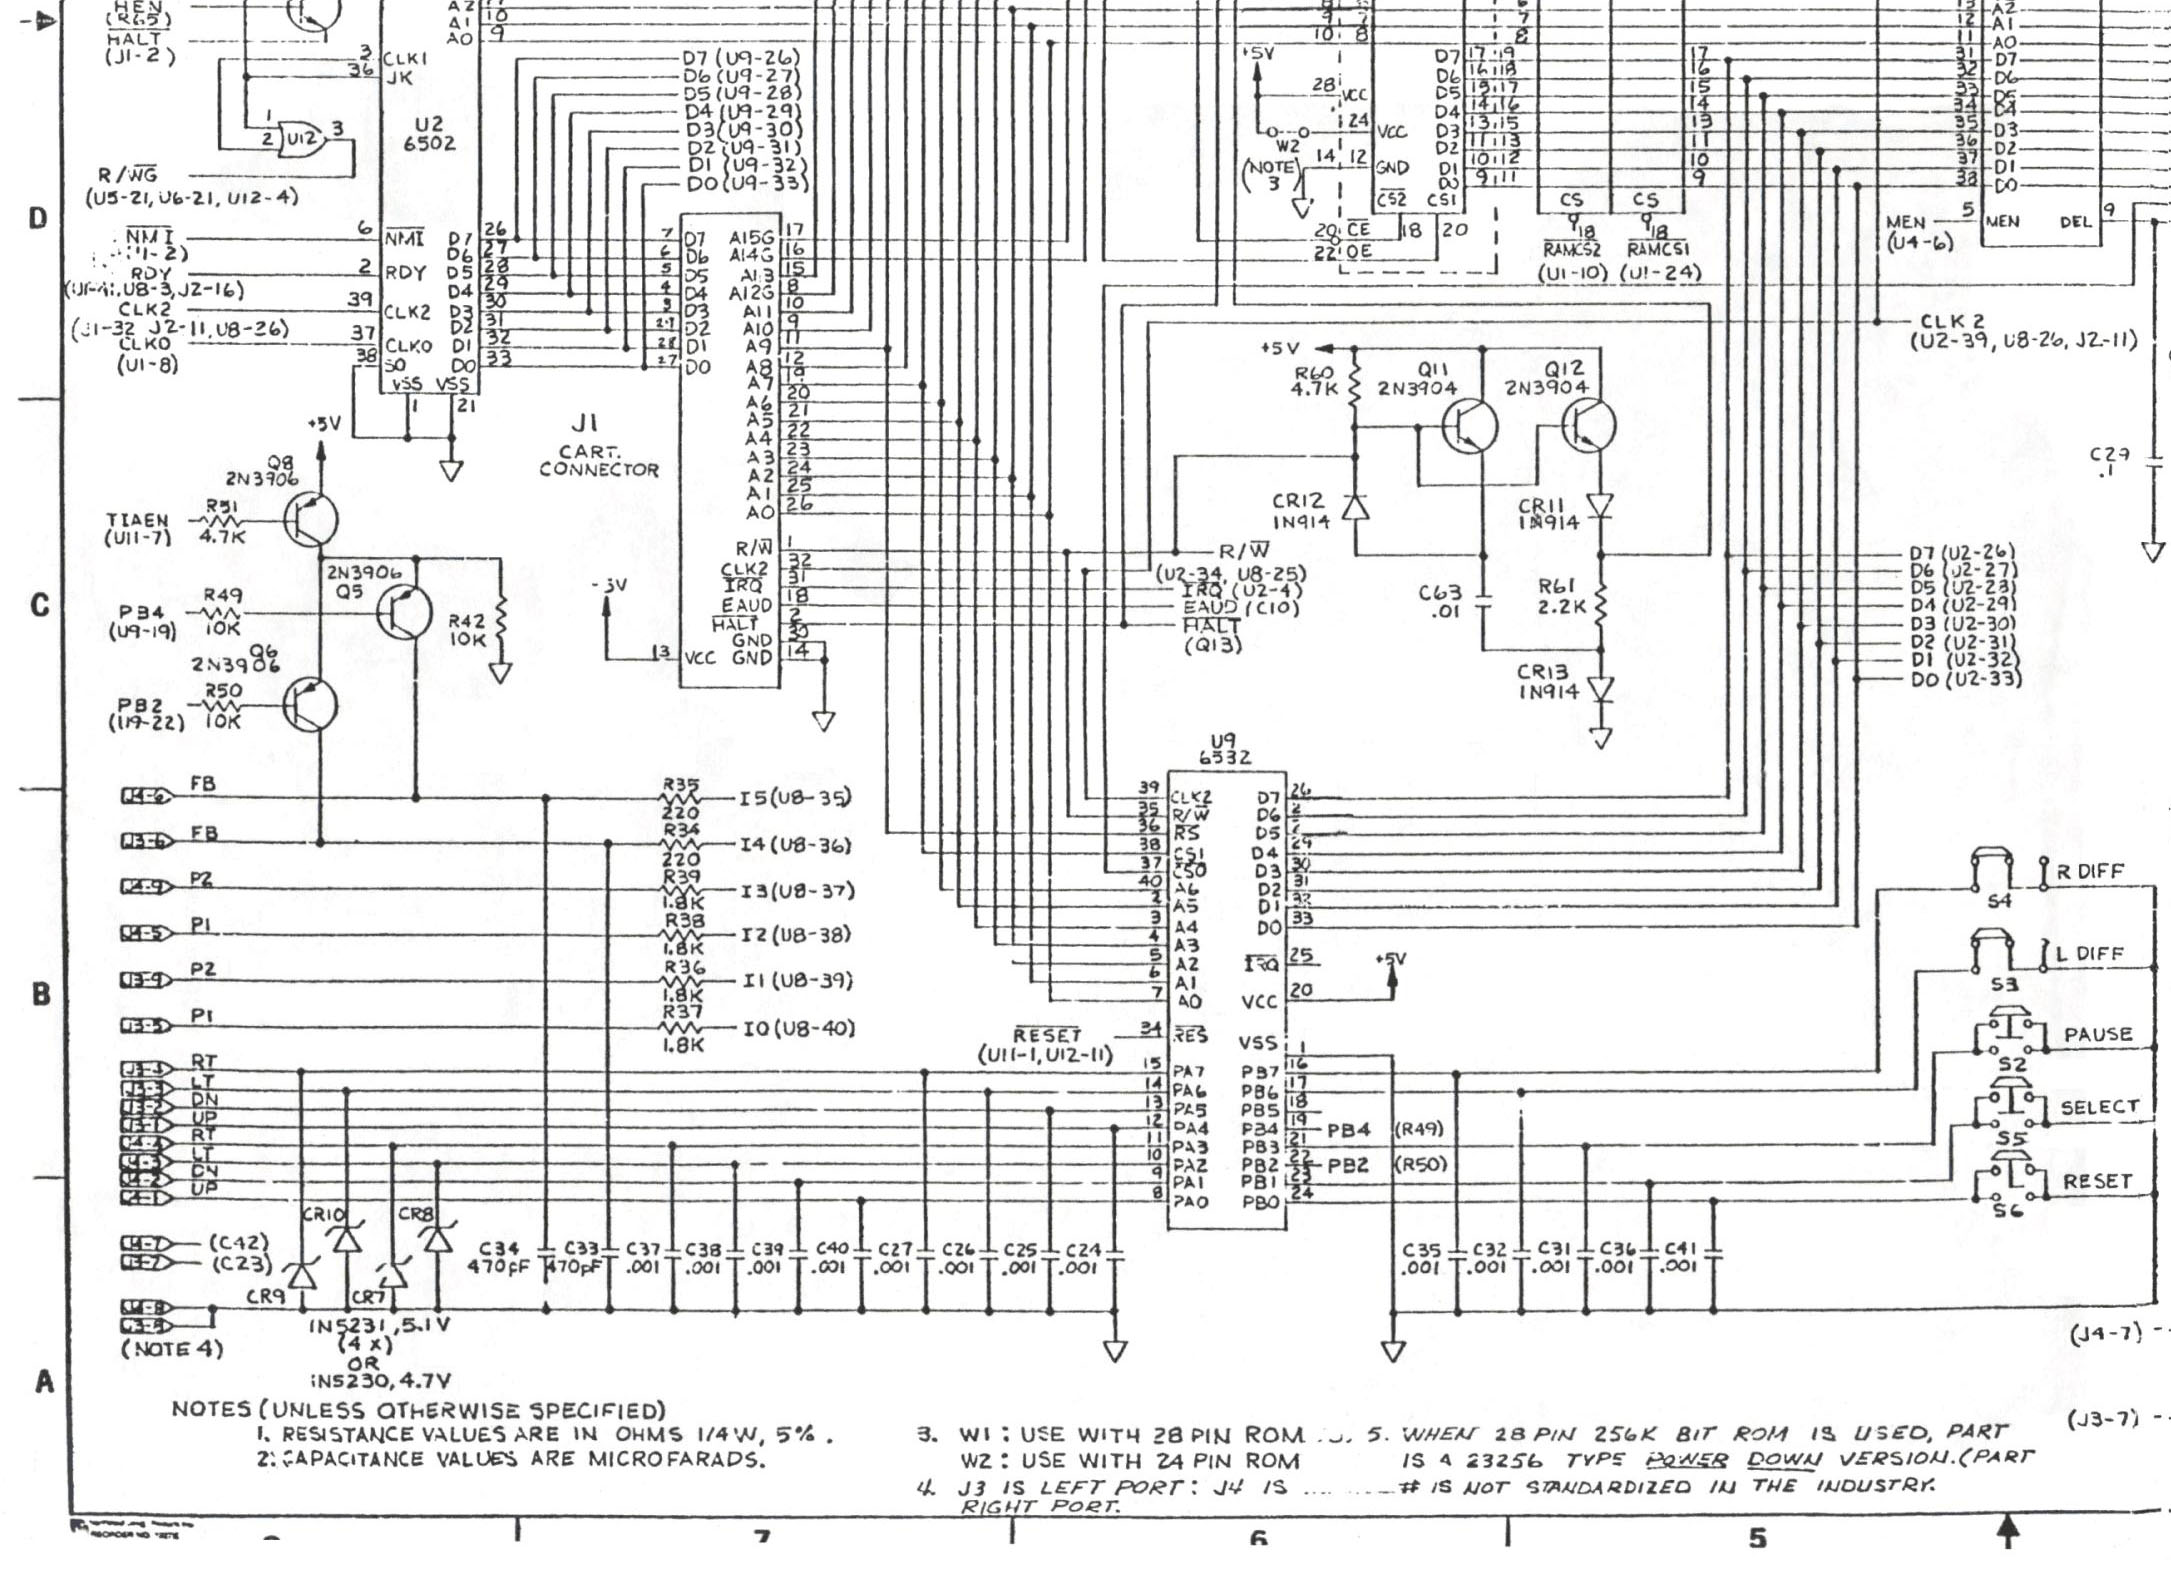 Wiring Diagram For Atari 7800 Seniorsclub It Device Frequency Device Frequency Pietrodavico It